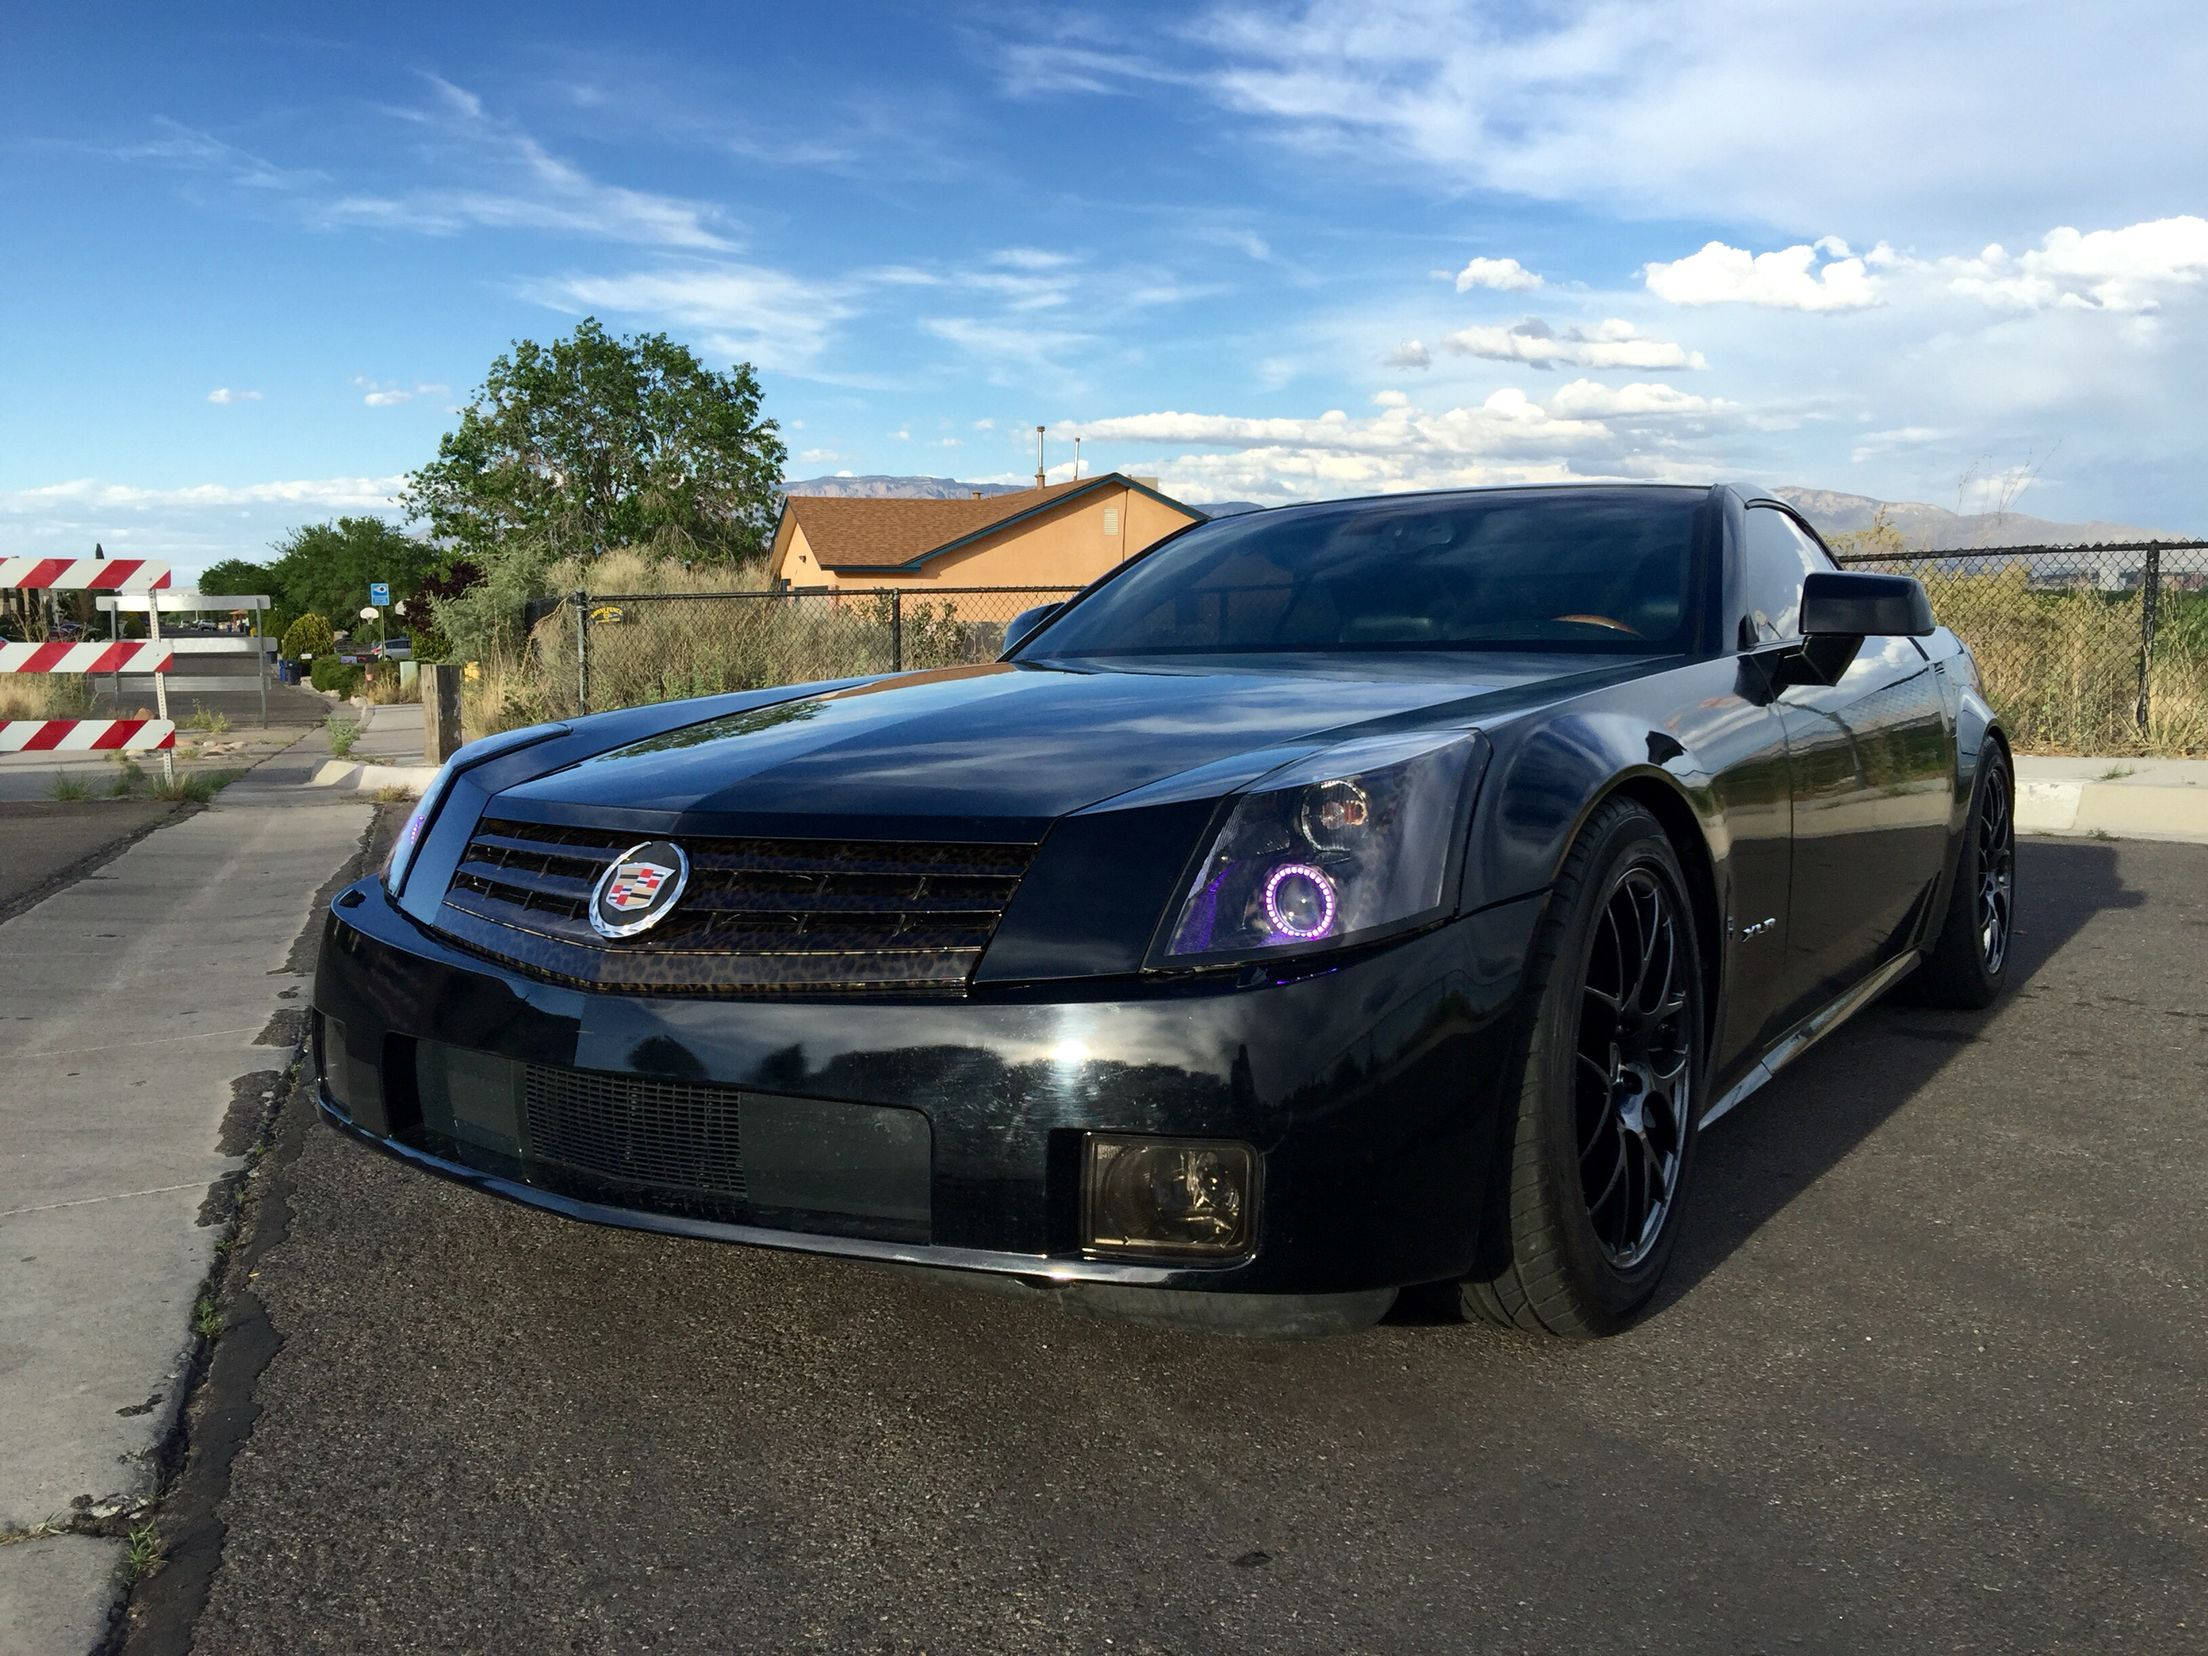 facelift photos spy cadillac for sale news xlr